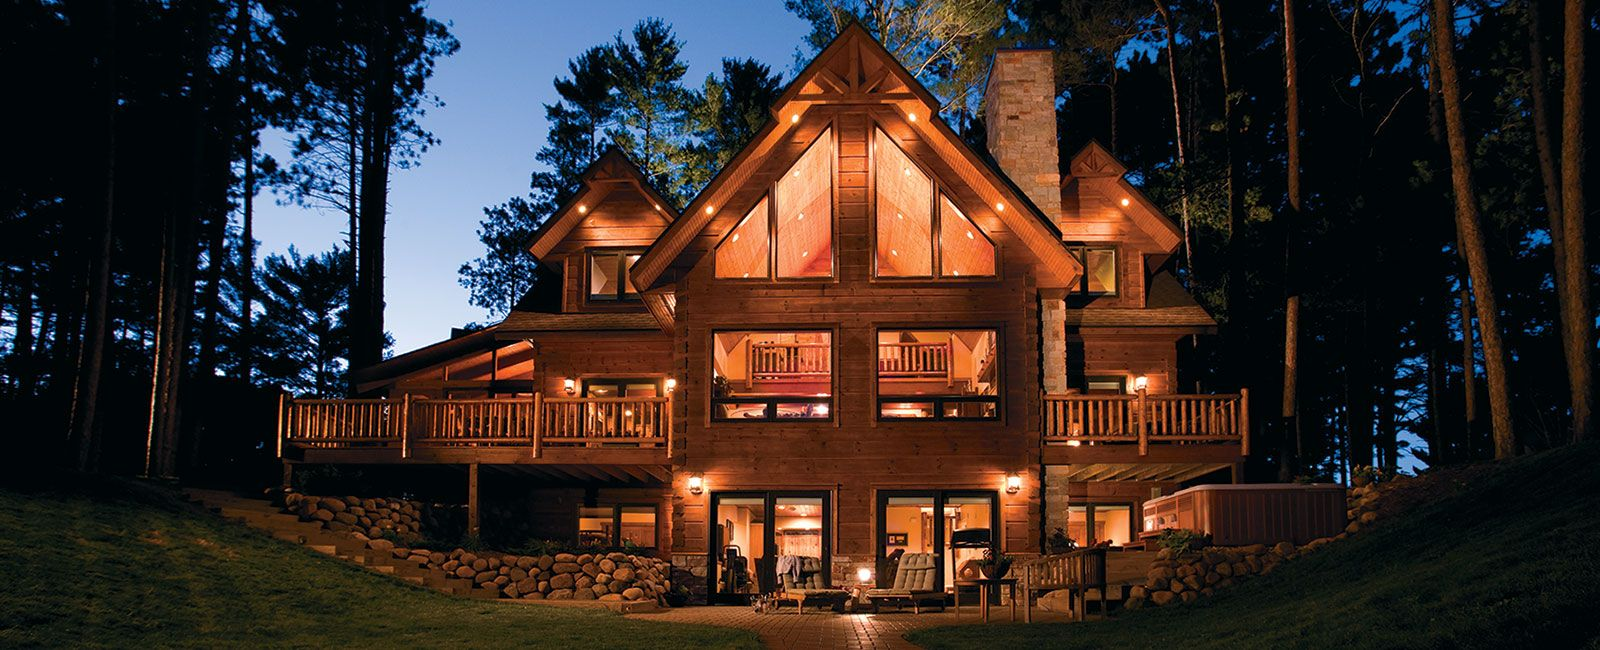 Custom, handcrafted log home, timber home, or hybrid home built from ...